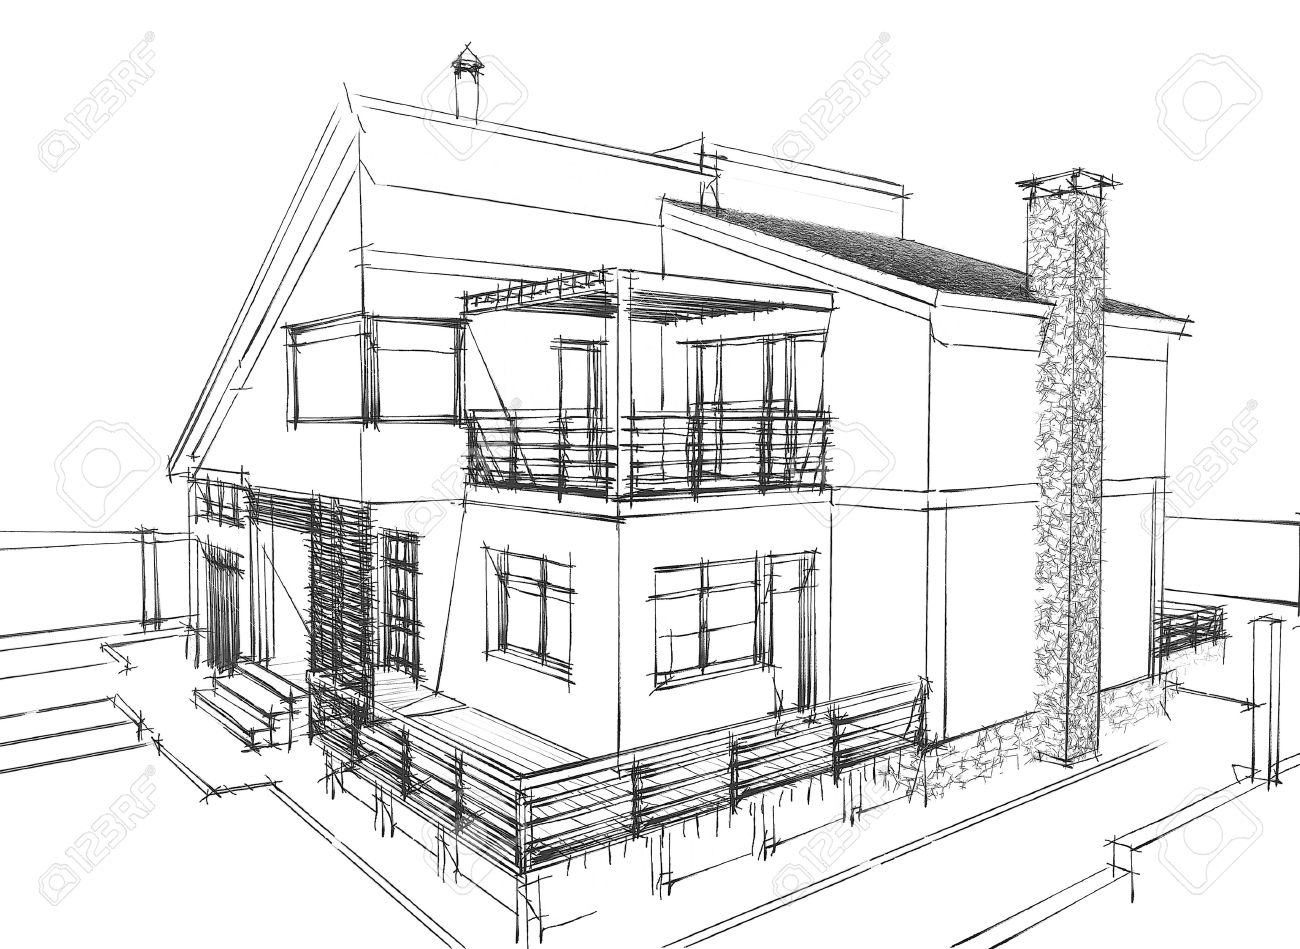 House Architecture Sketch house architecture sketch - home design ideas